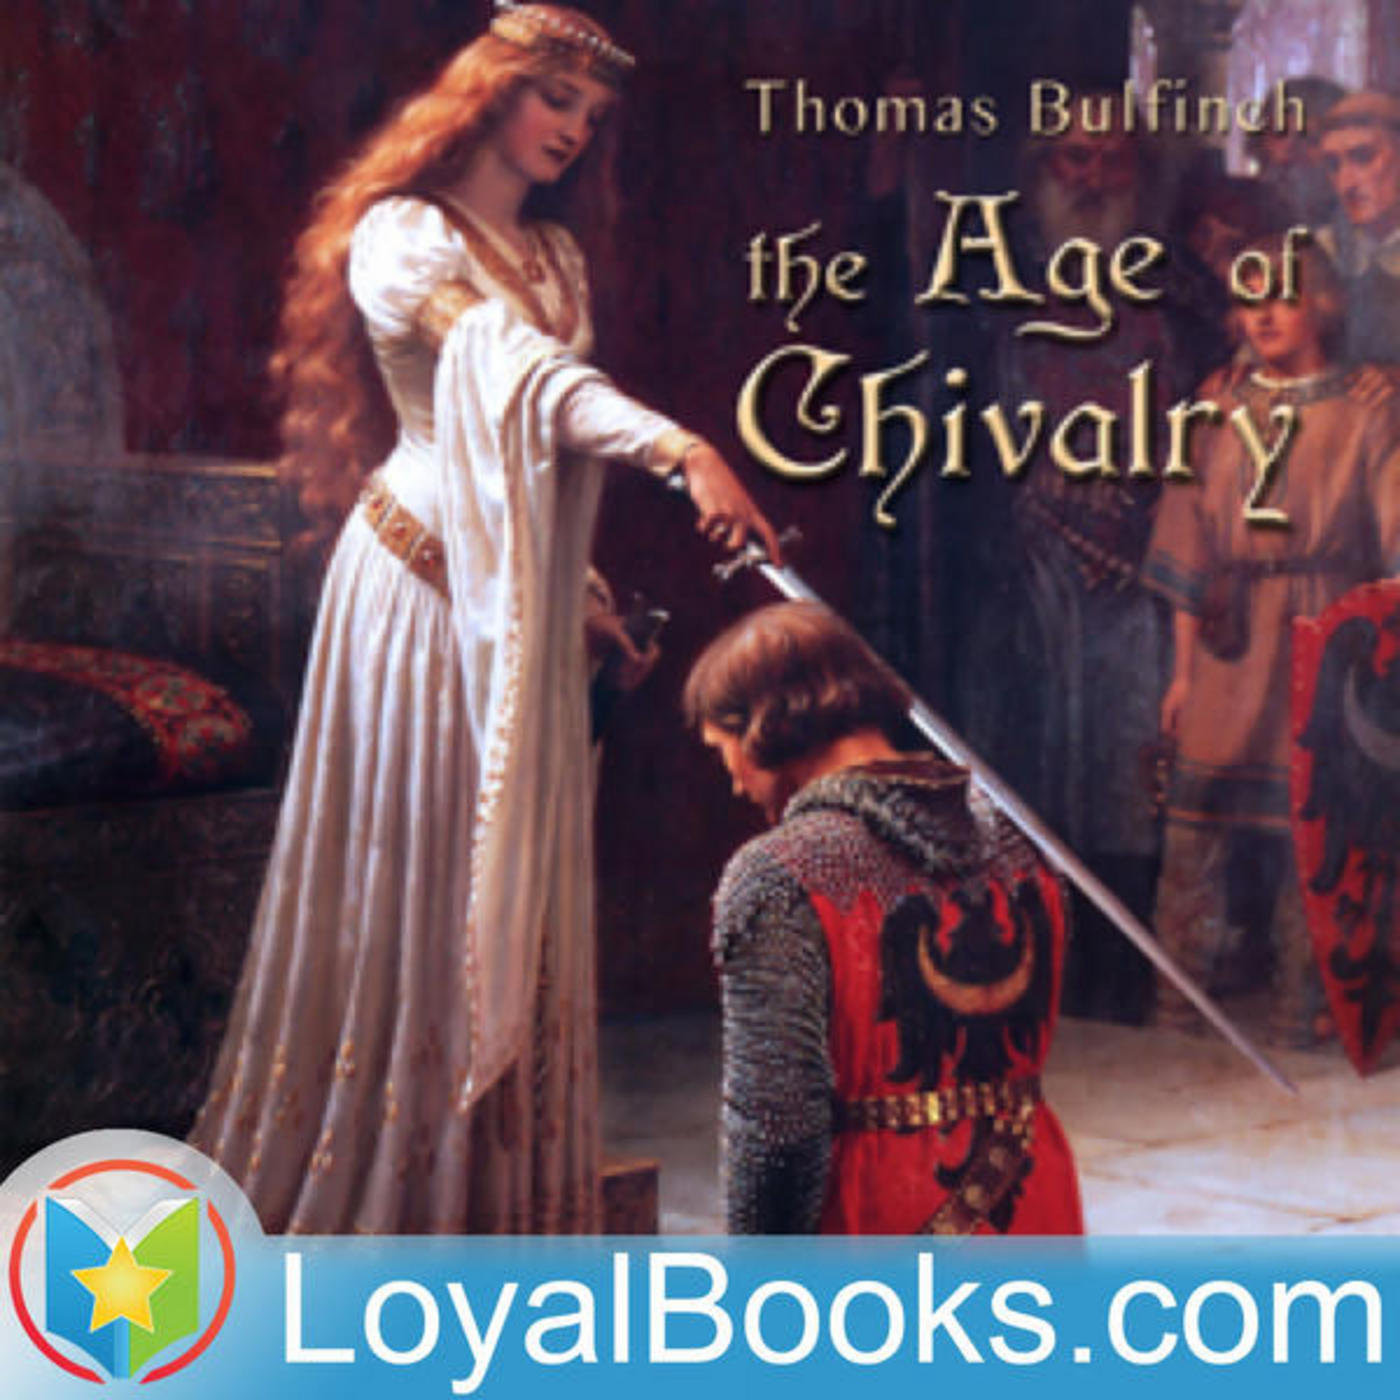 literary examples of chivalry Chivalry definition: chivalry is polite , kind , and unselfish behaviour, especially by men towards women | example sentences containing 'chivalry' these examples have been automatically selected and may contain sensitive content read more.